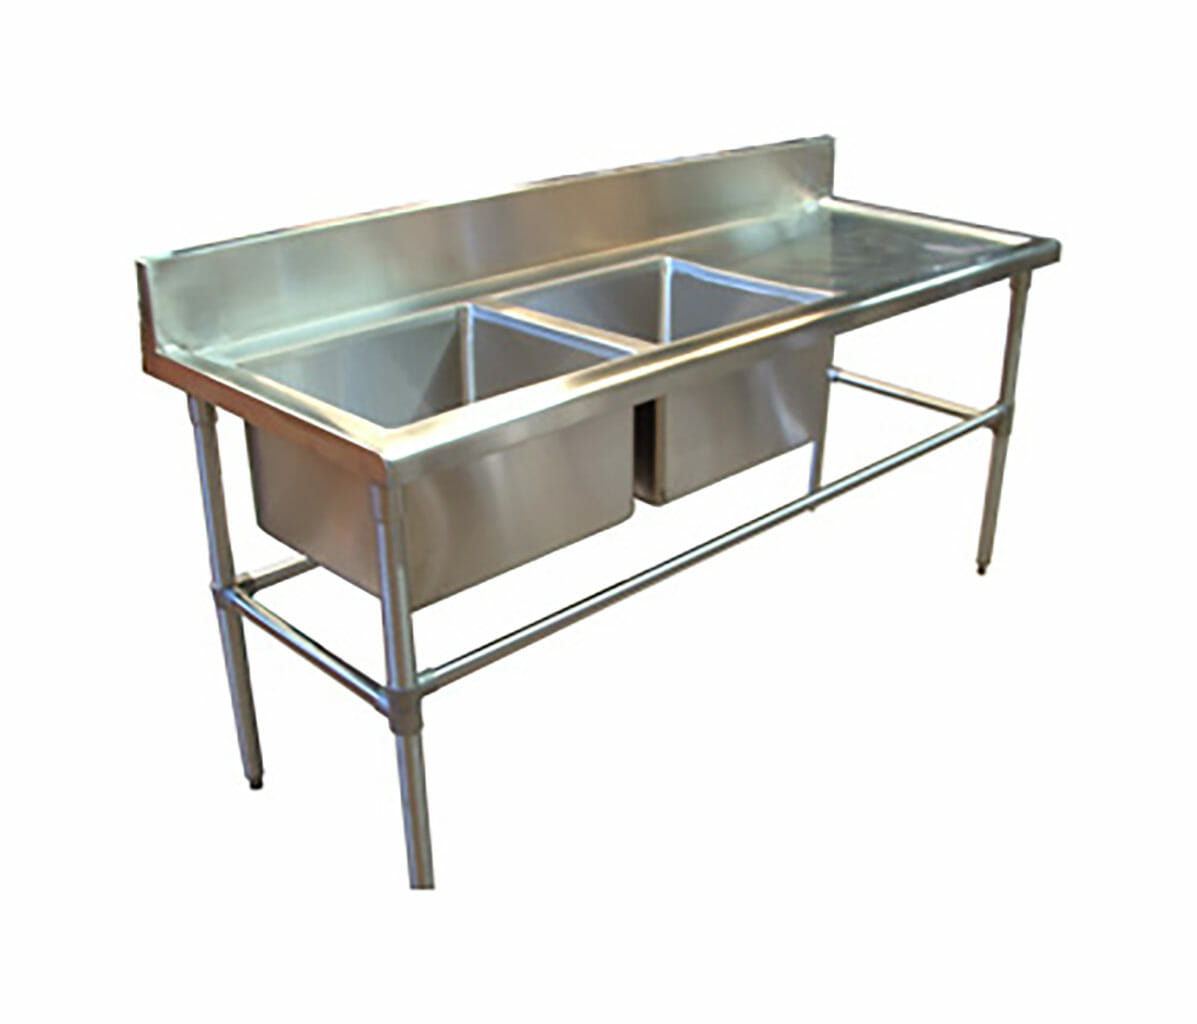 Double Bowl Stainless Steel Commercial Sink – Right Bench, 1700 x 700 x 900mm high